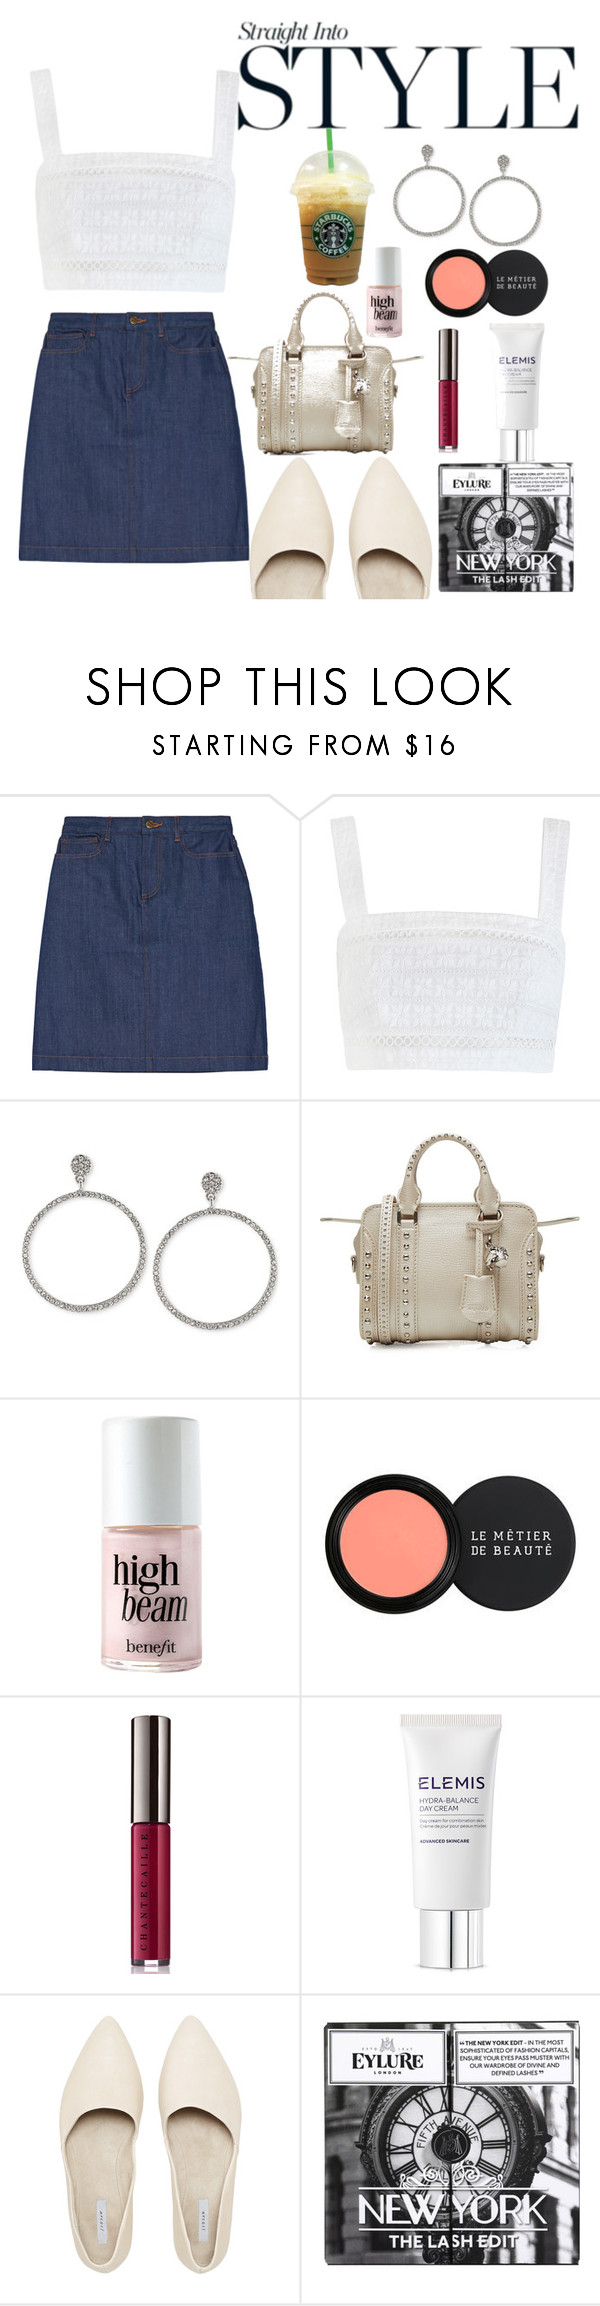 """""""Untitled #318"""" by msbillj ❤ liked on Polyvore featuring A.P.C., Zimmermann, Carolee, Alexander McQueen, Benefit, Le Métier de Beauté, Chantecaille, Elemis and eylure"""